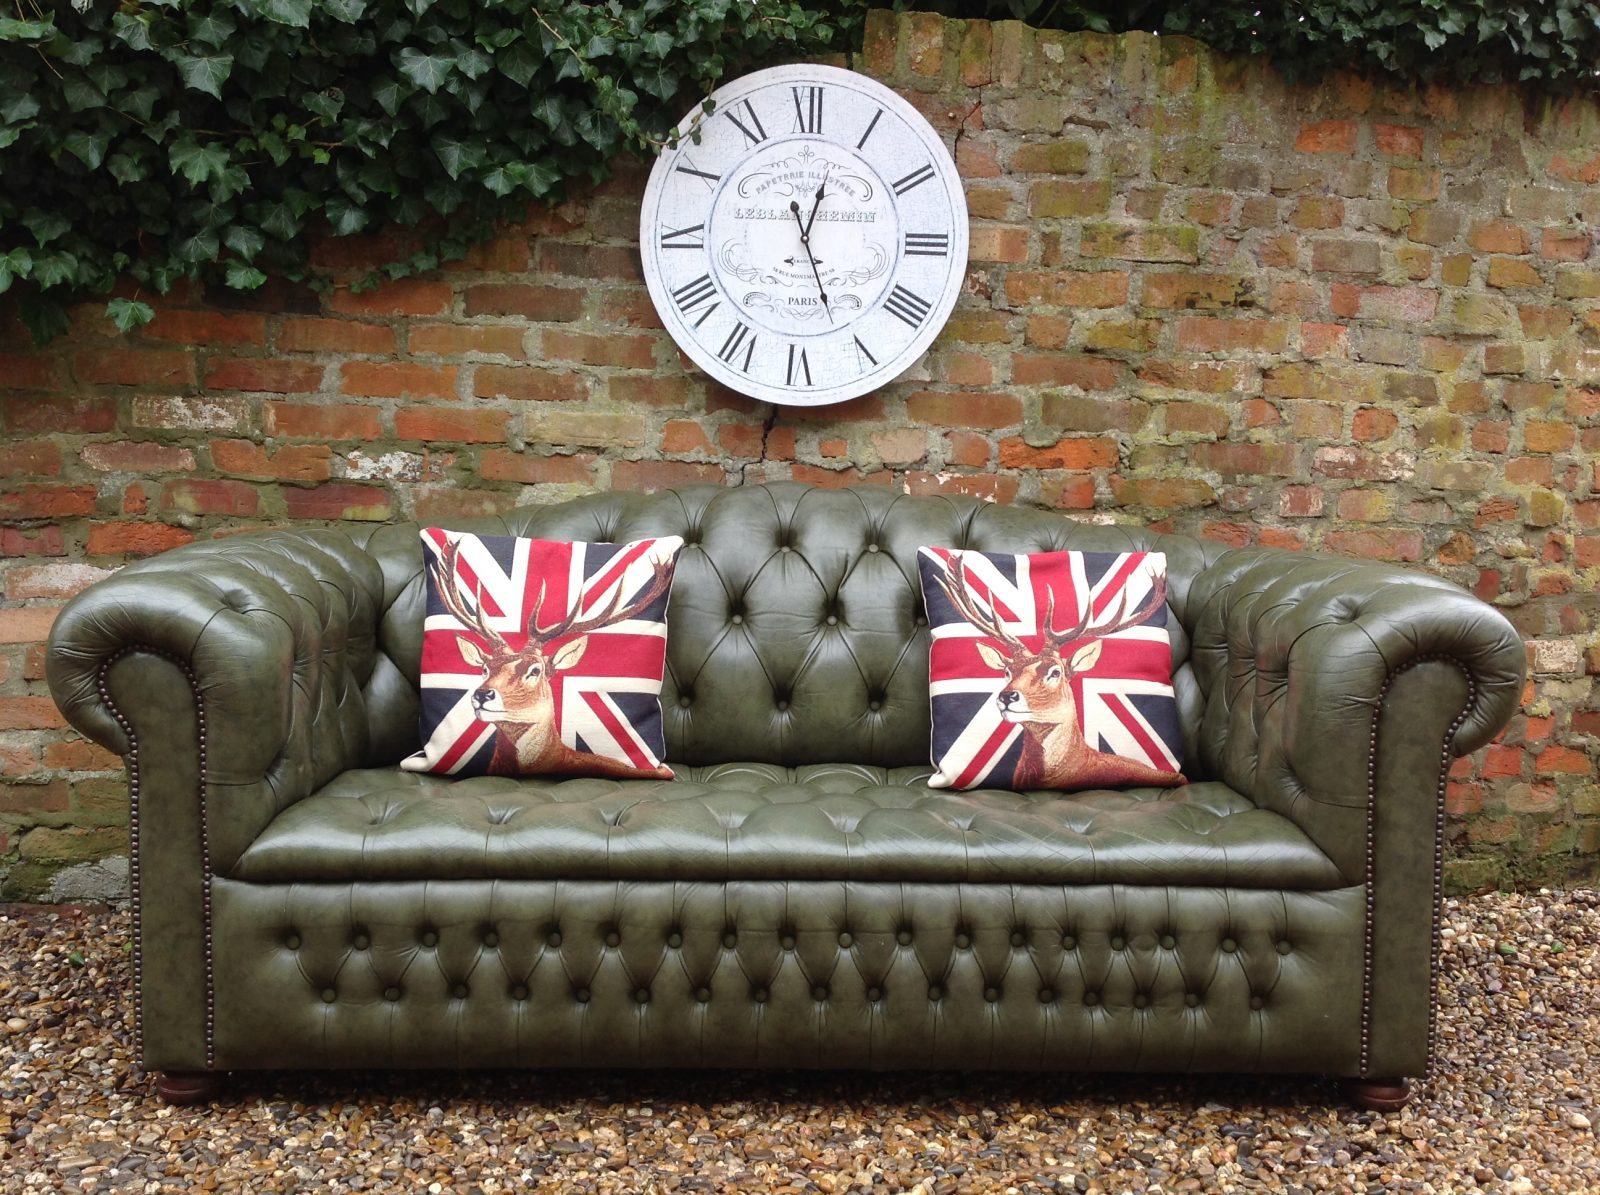 Olive Green 3 Seater Chesterfield Sofa……..( Matching 2 Seater Available )